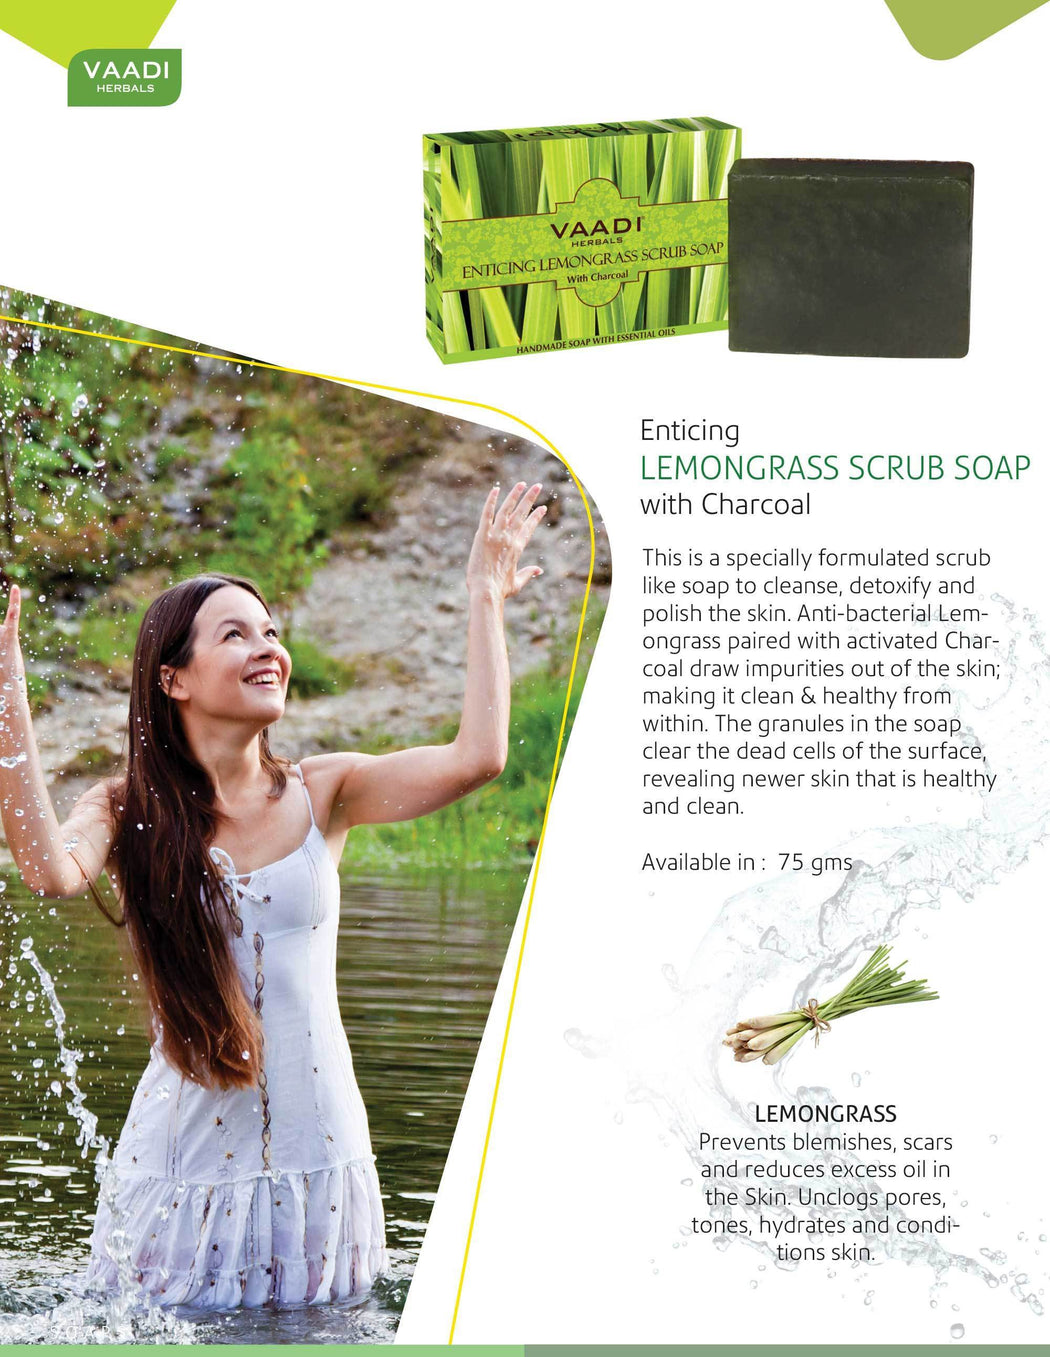 Enticing Organic Lemongrass Soap with Charcoal - Exfoliates & Polishes Skin - Makes Skin Smooth (12 x 75 gms / 2.7 oz)